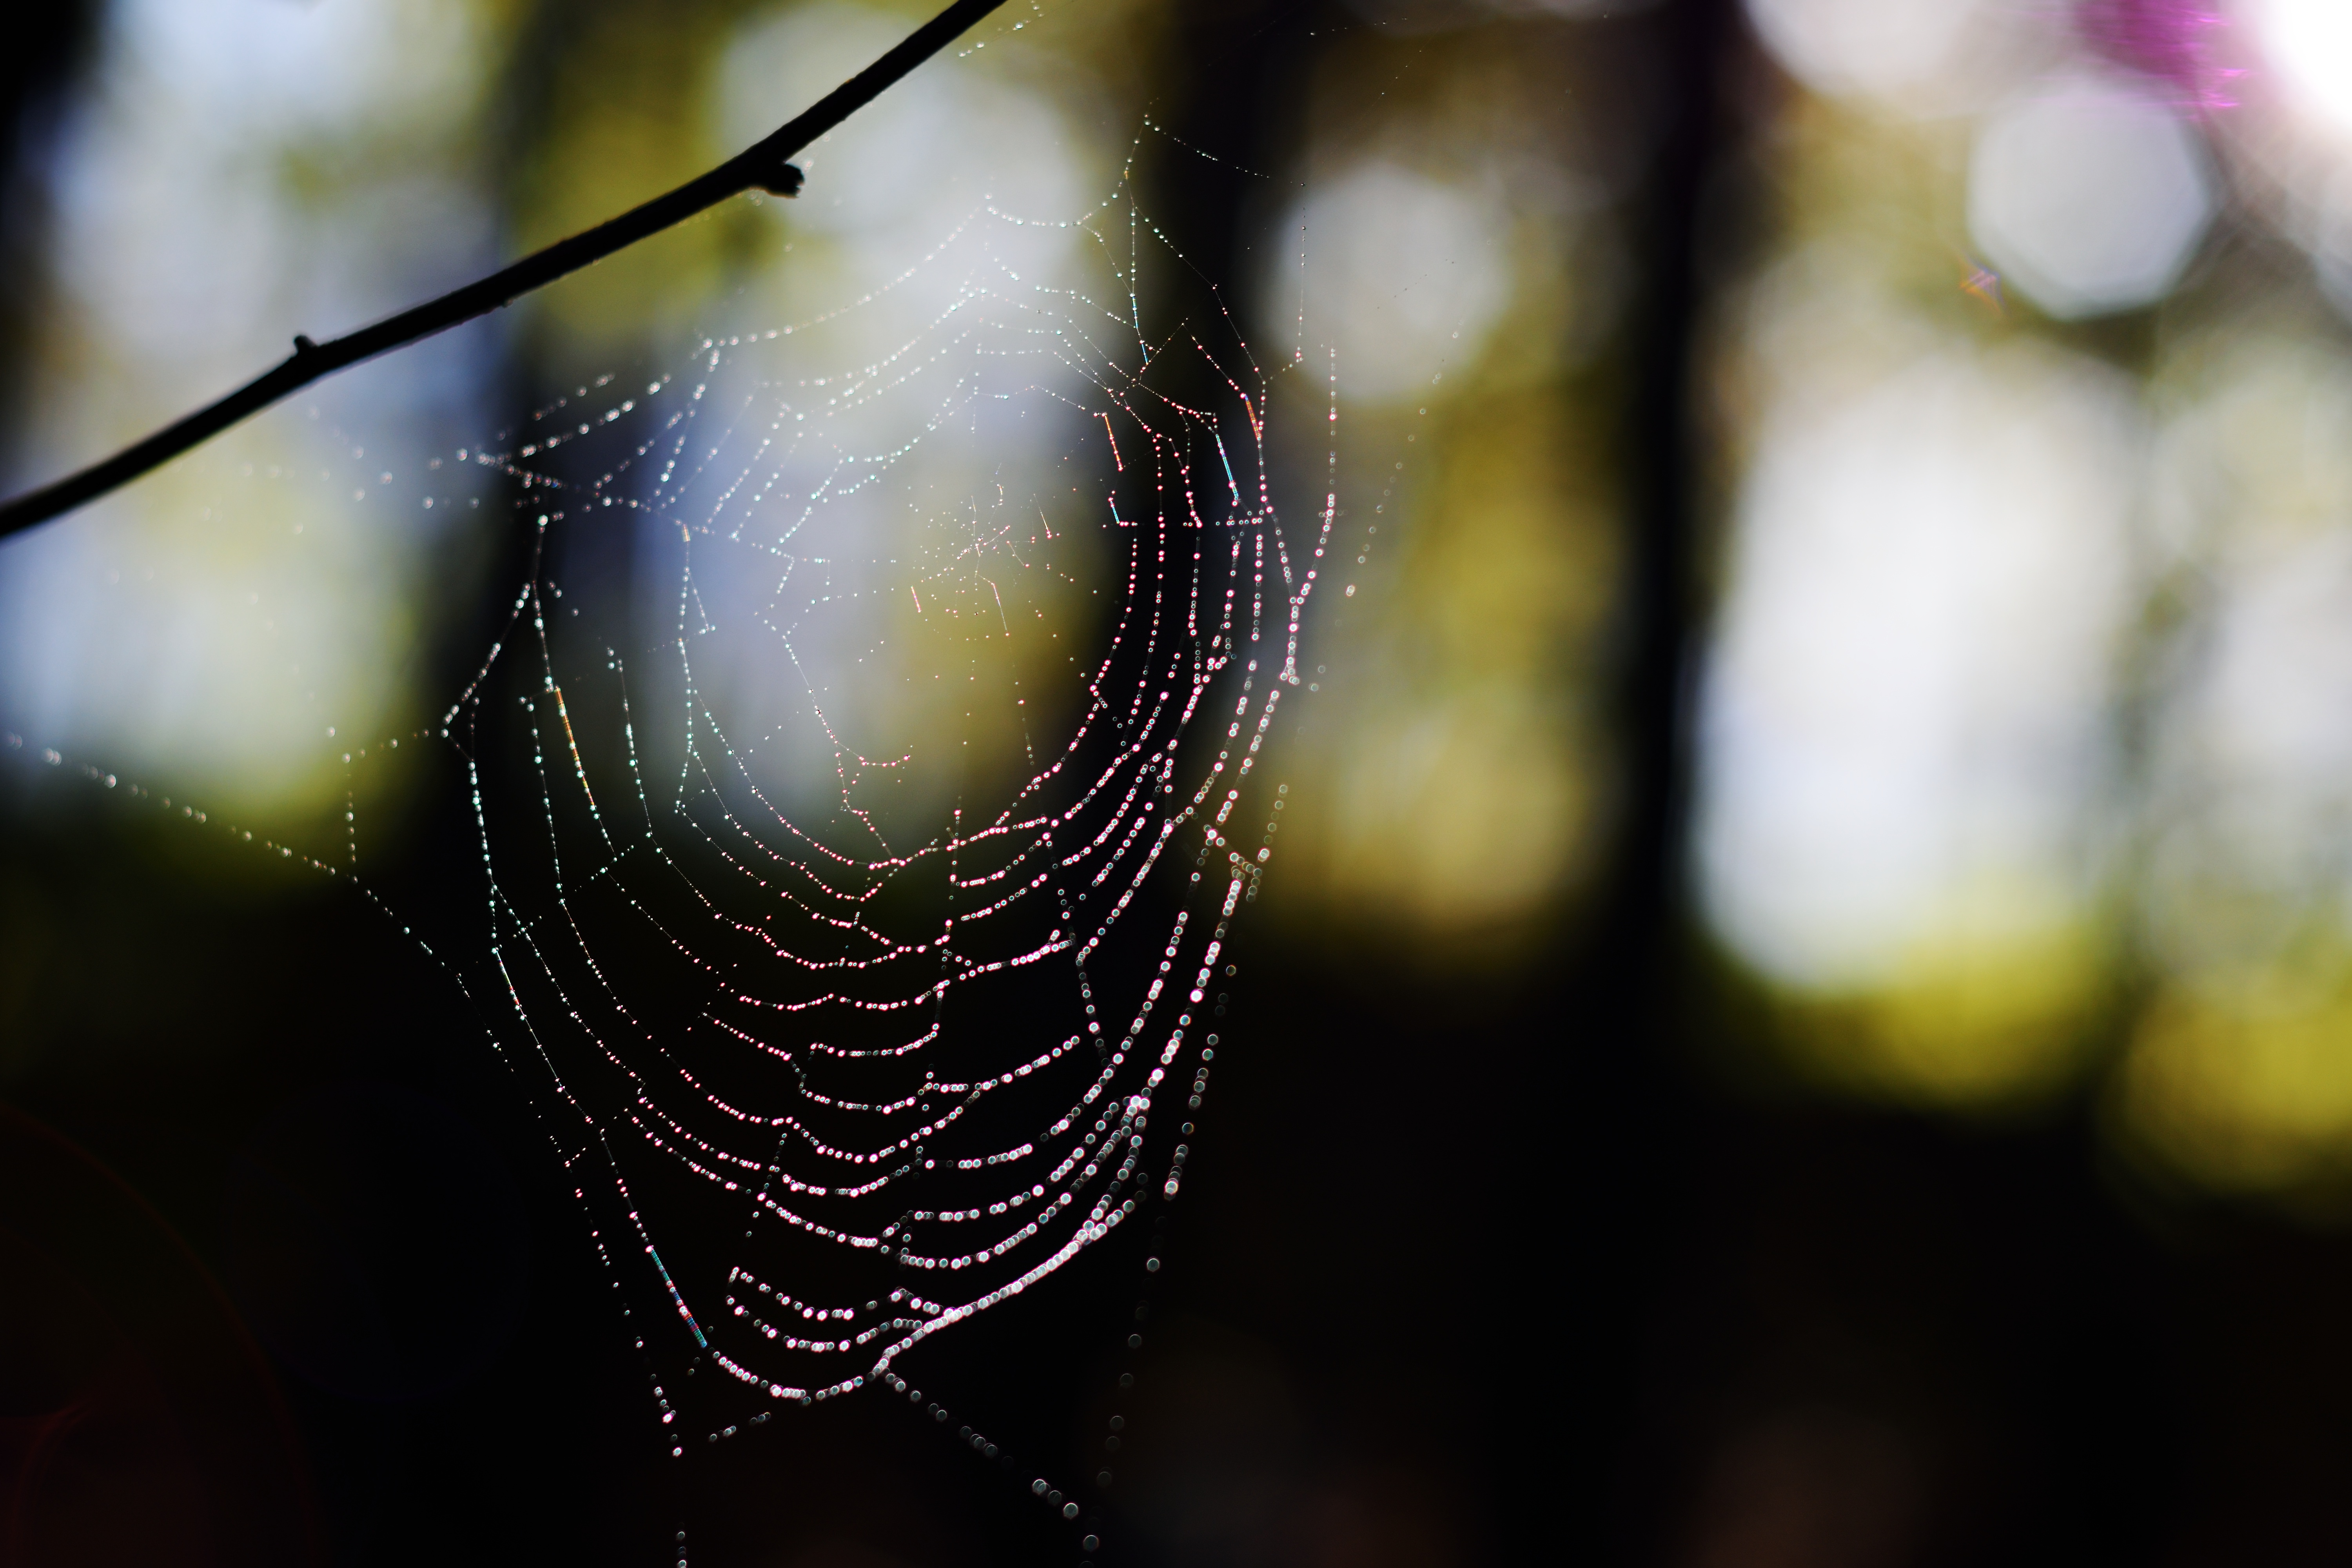 Spider Web, Insect, Spider, Web, HQ Photo